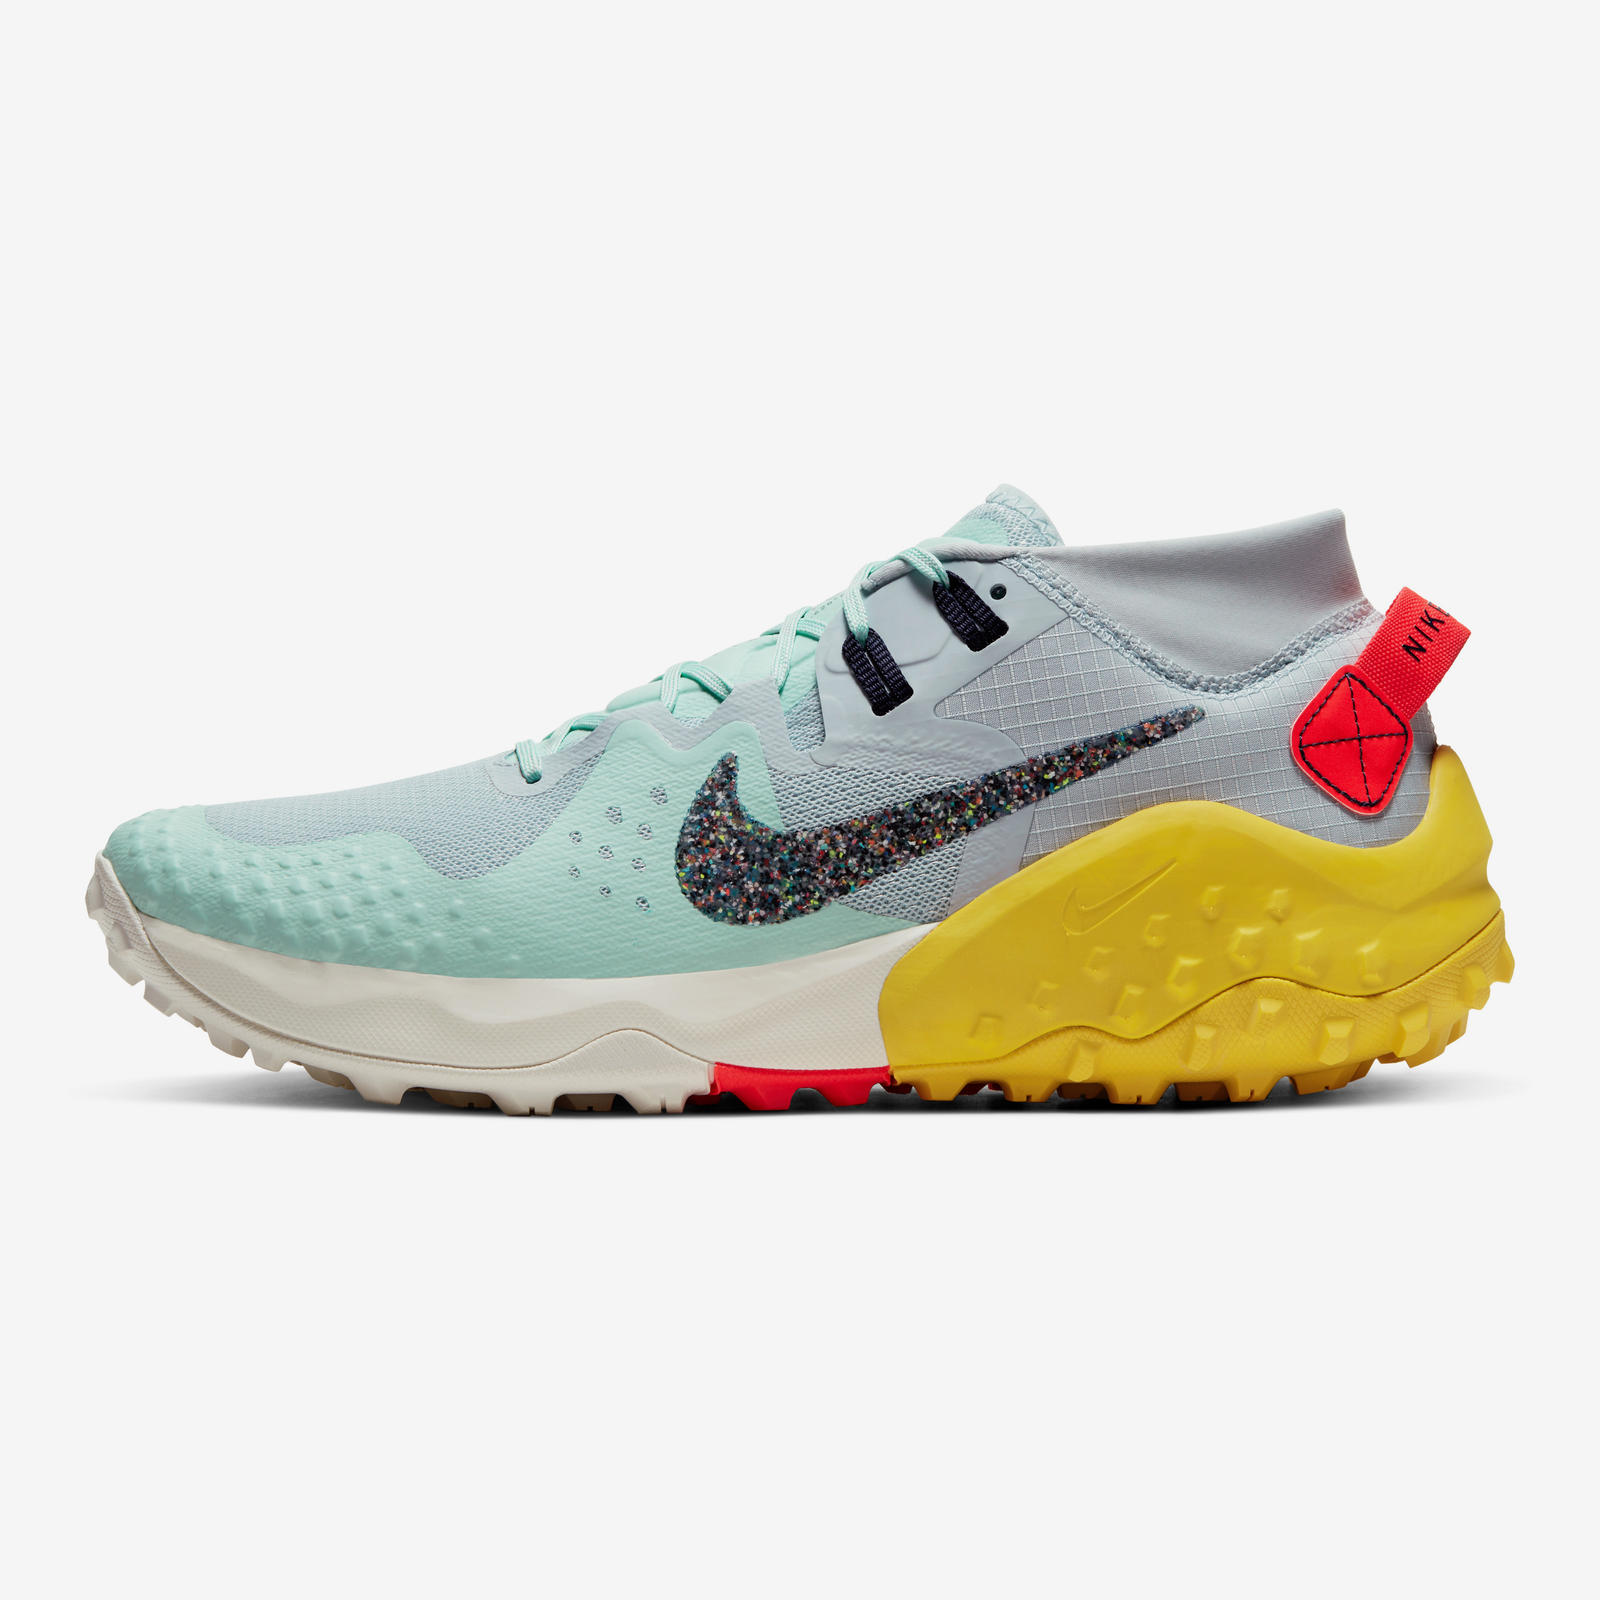 Nike Trail Air Zoom Kiger 6 Air Zoom Wildhorse 6 Official Images and Release Date 25